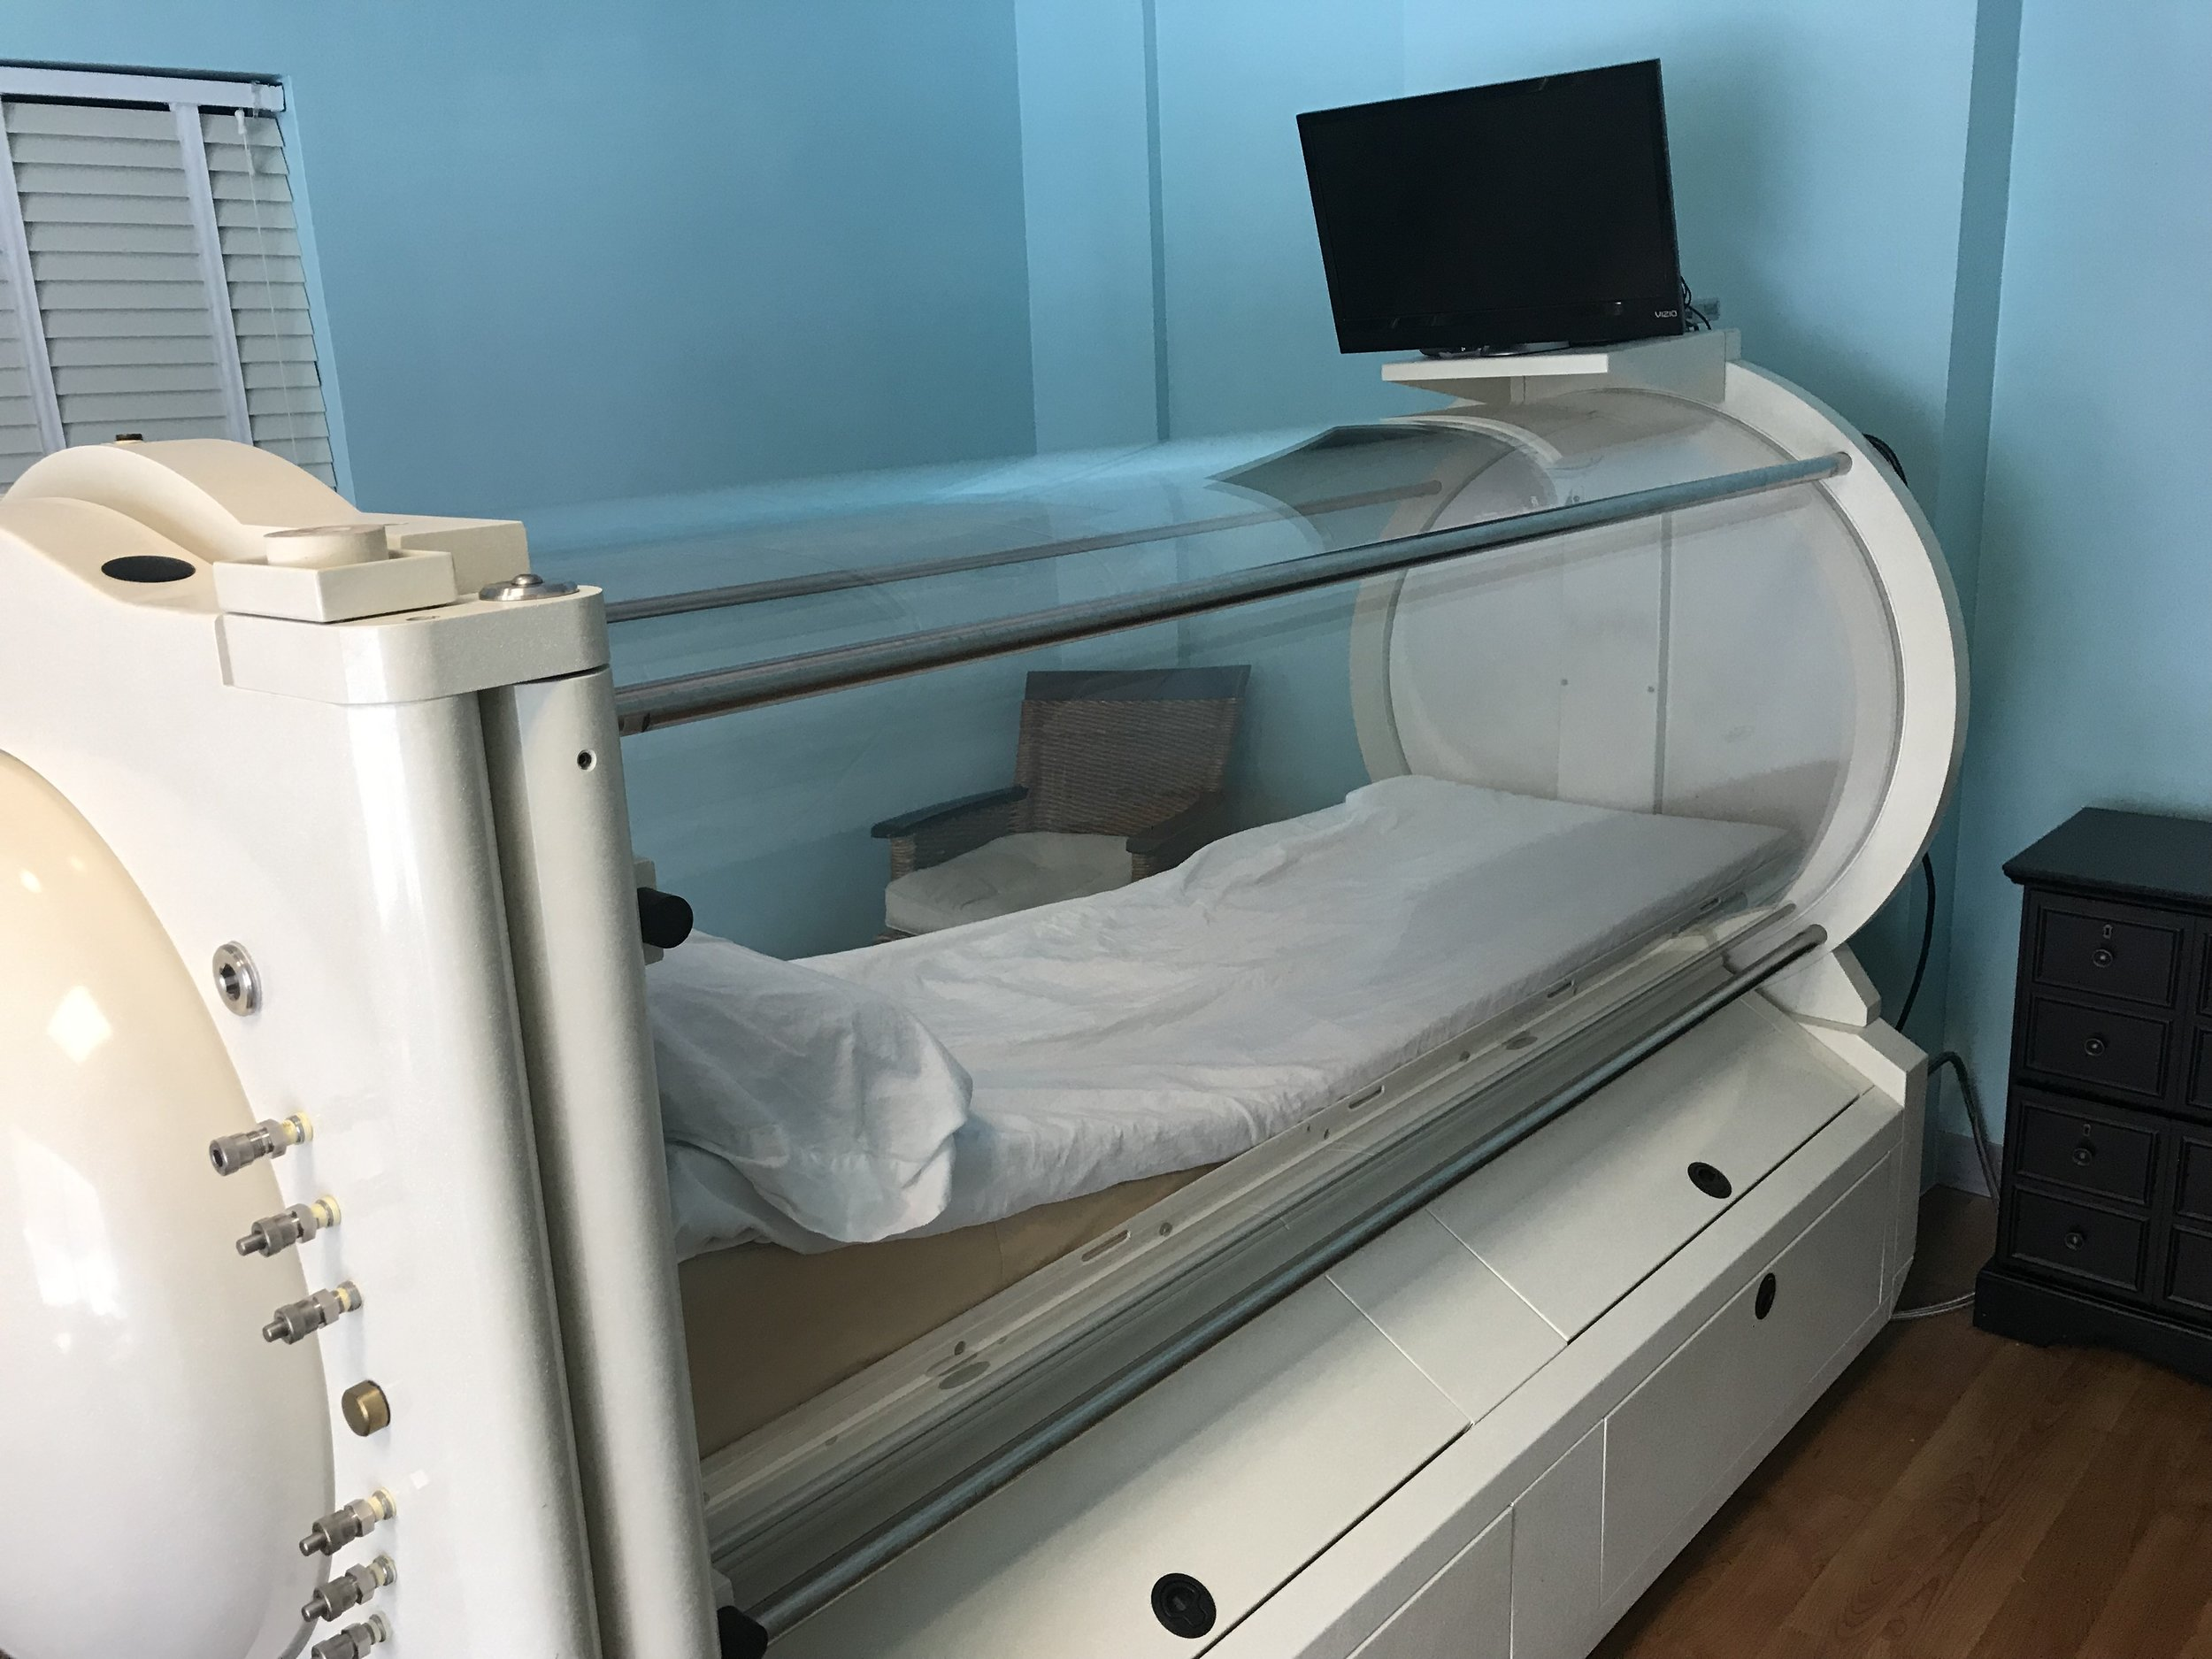 hYPERBARIC oXYGEN THERAPY - CONTACT US TODAY TO SEE HOW HBOT CAN HELP YOU843-422-8070hhihbot@gmail.com